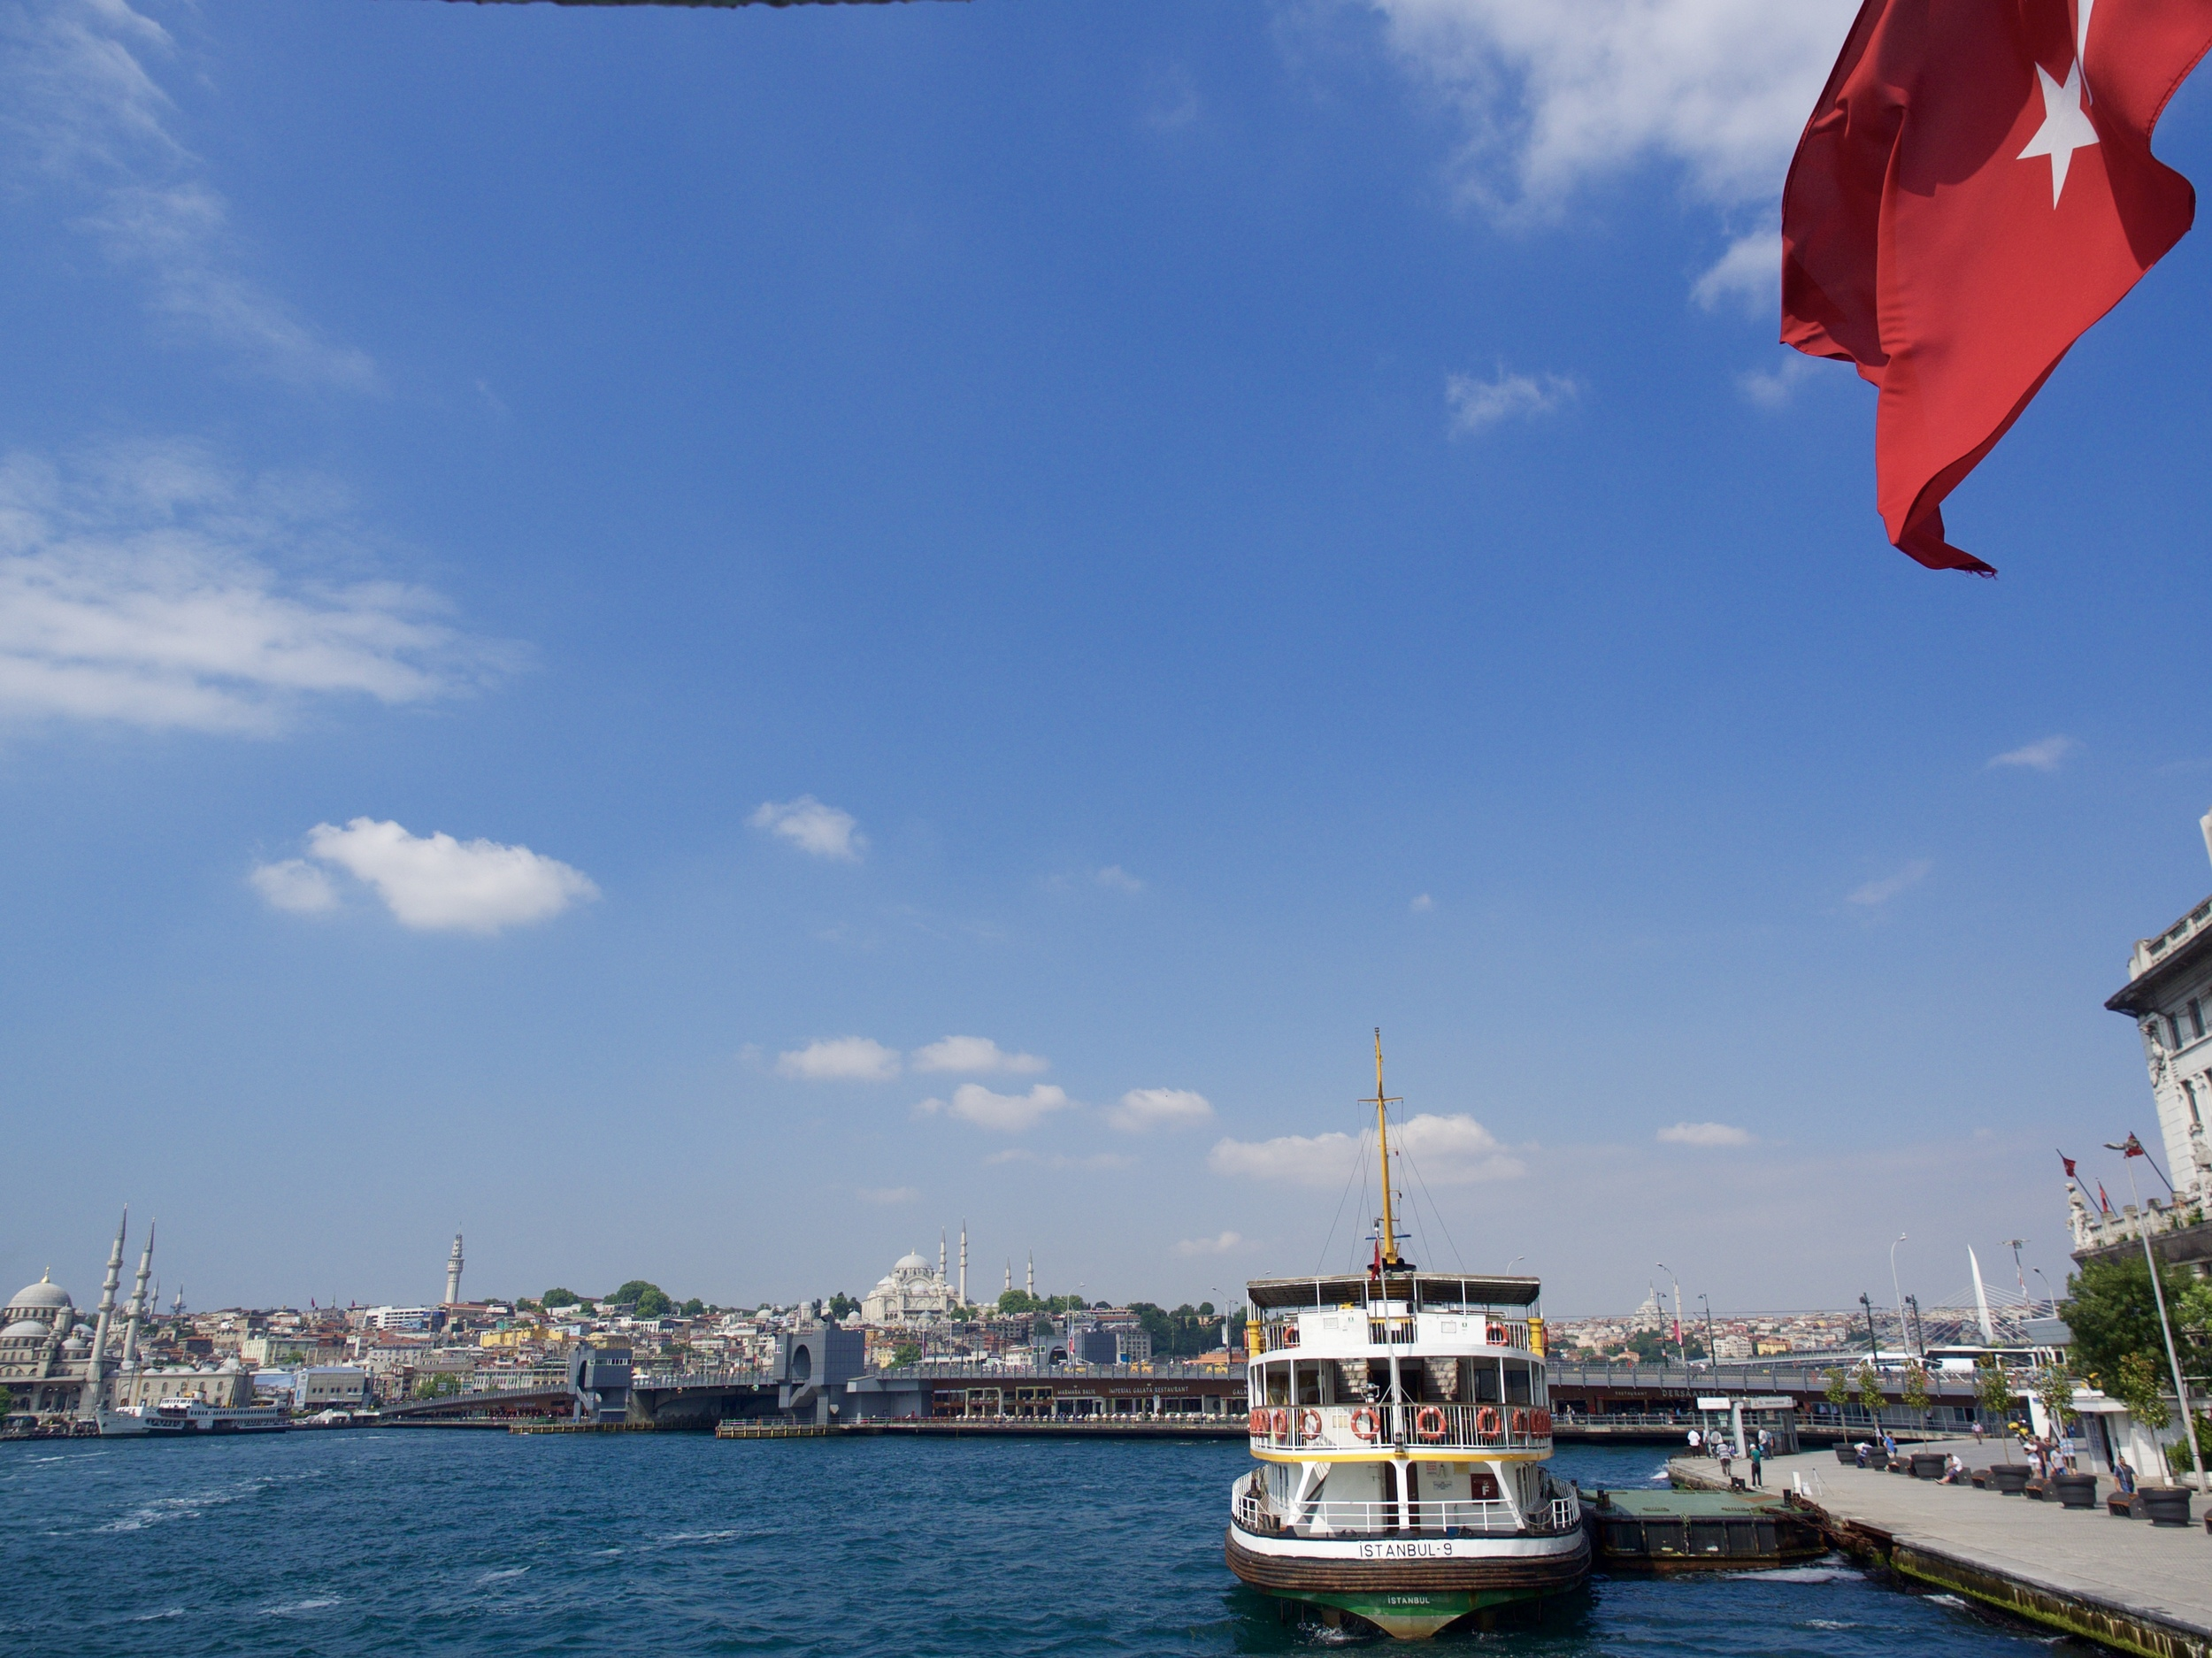 Hopping on the city ferry to cross the Bosphorus over to Asia.